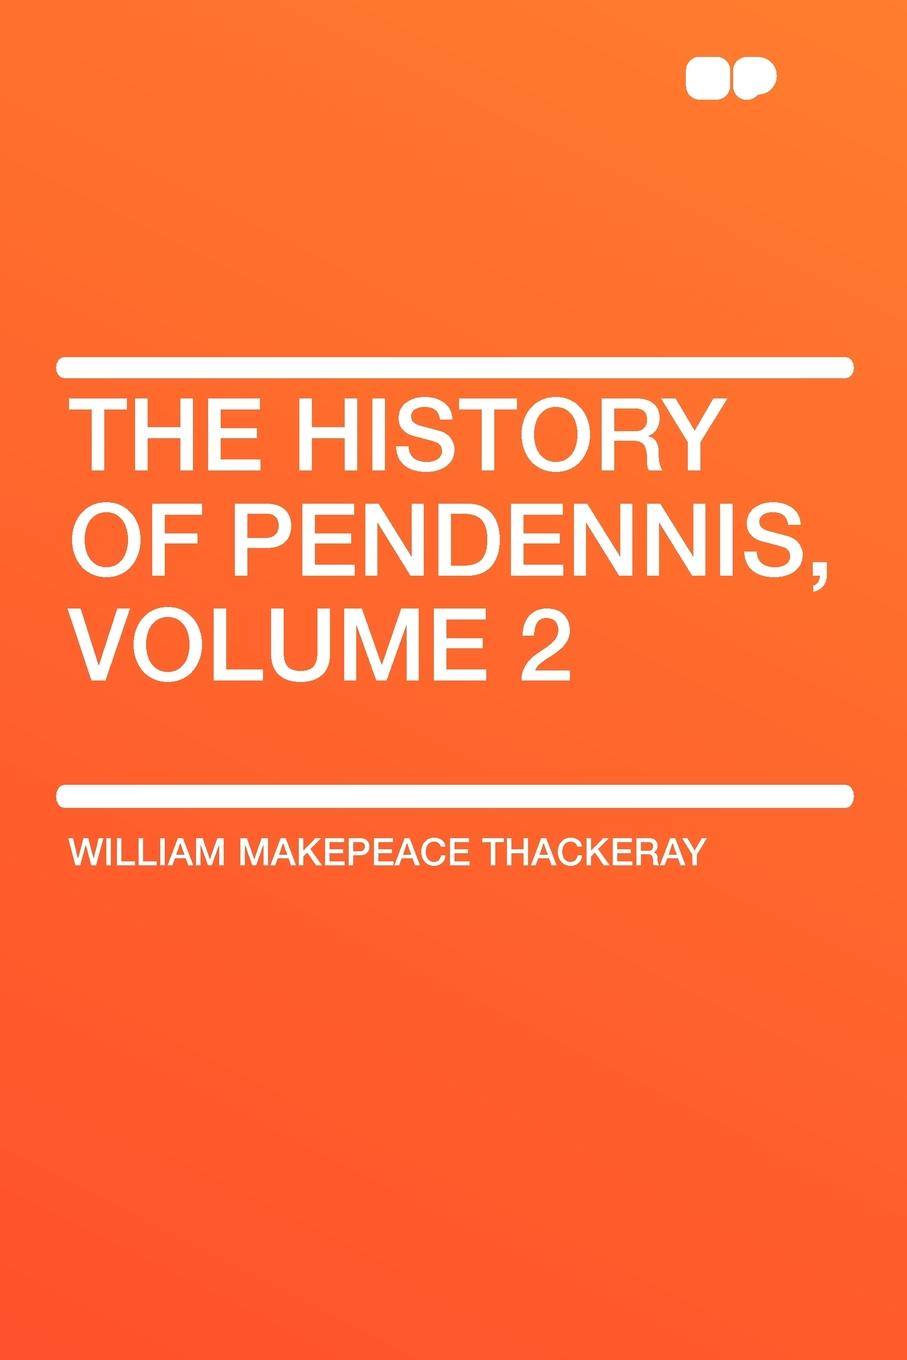 William Makepeace Thackeray The History of Pendennis, Volume 2 thackeray william makepeace the history of pendennis 1